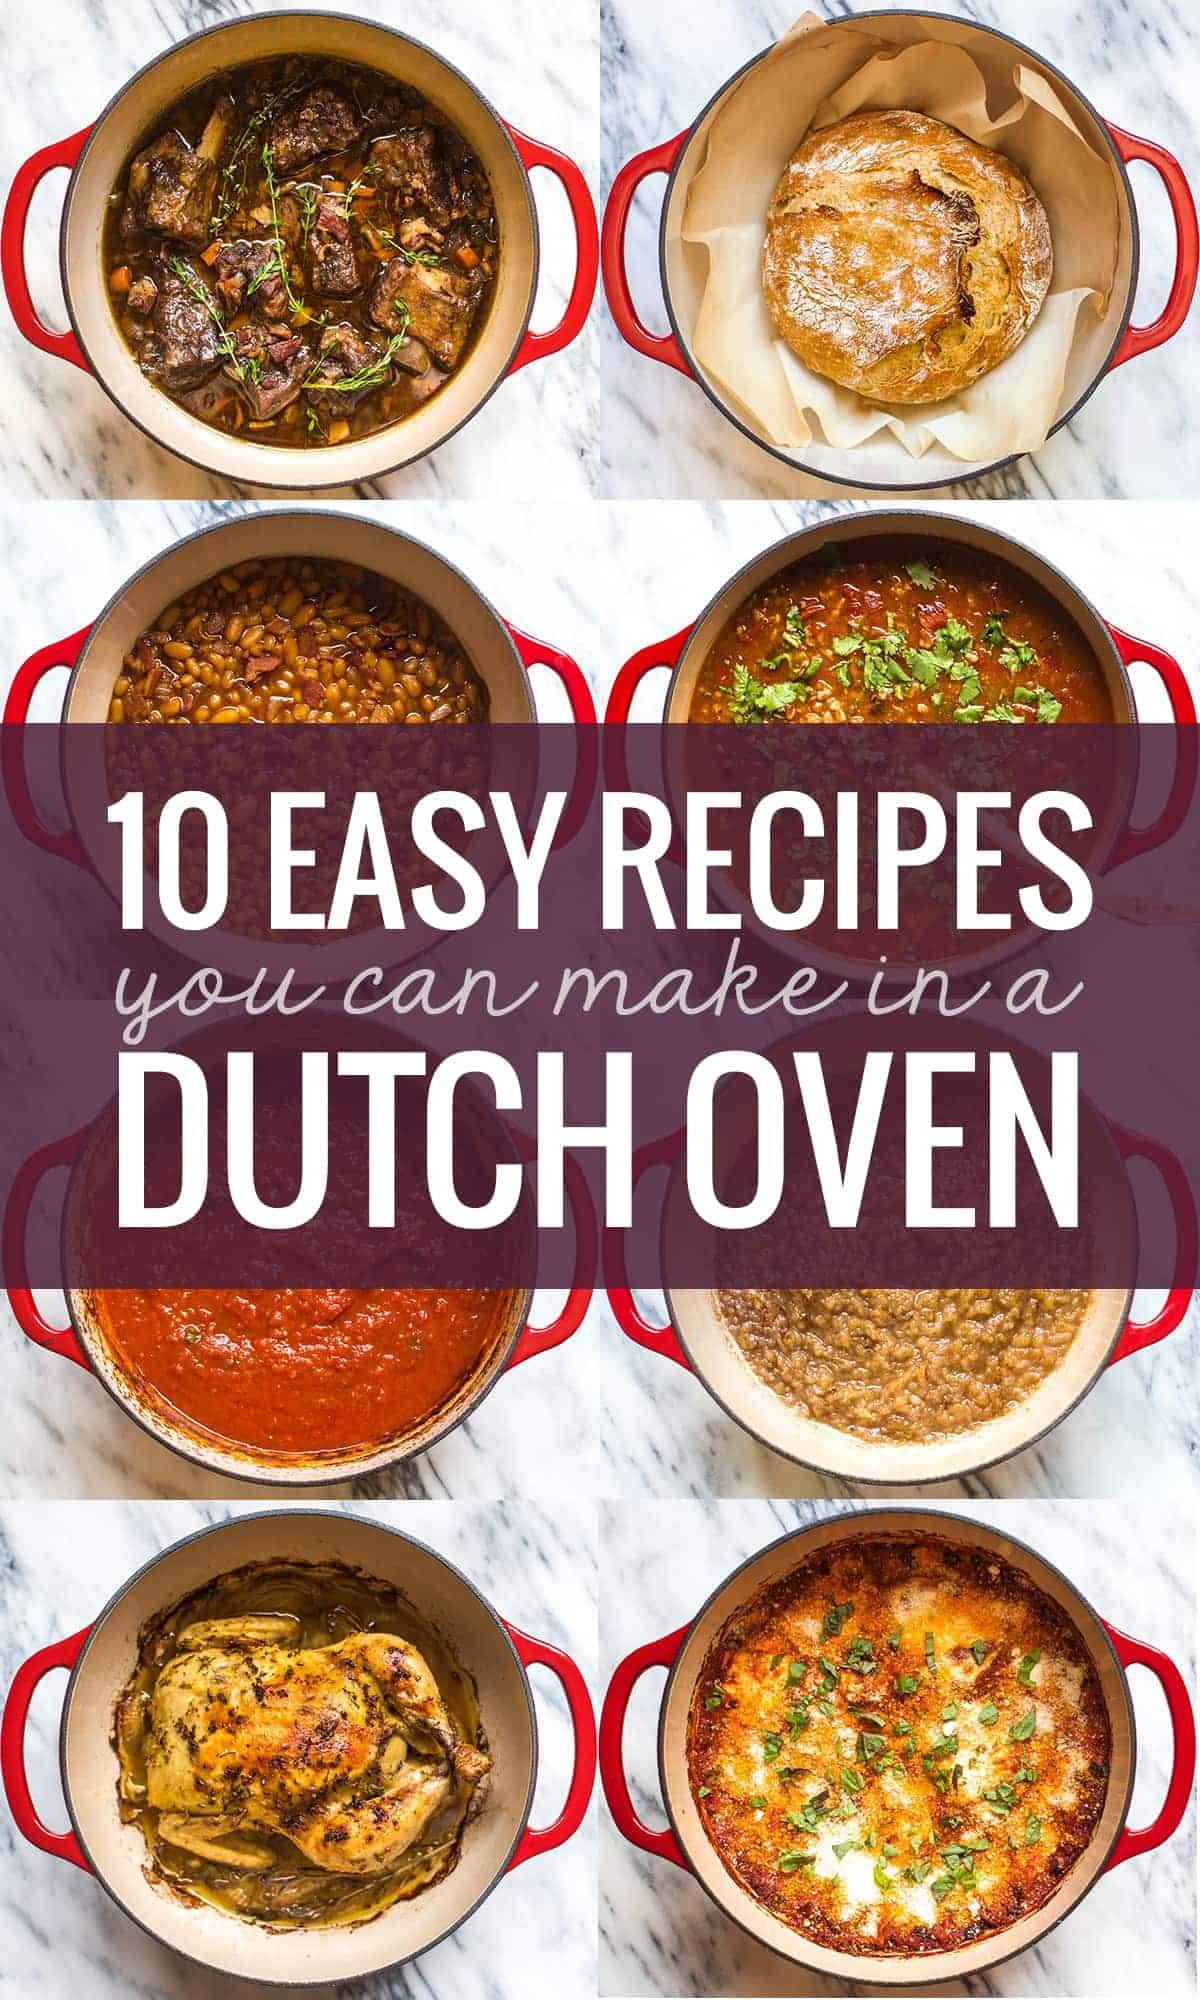 10 easy recipes you can make in a dutch oven pinch of yum 10 easy recipes you can make in a dutch oven forumfinder Image collections